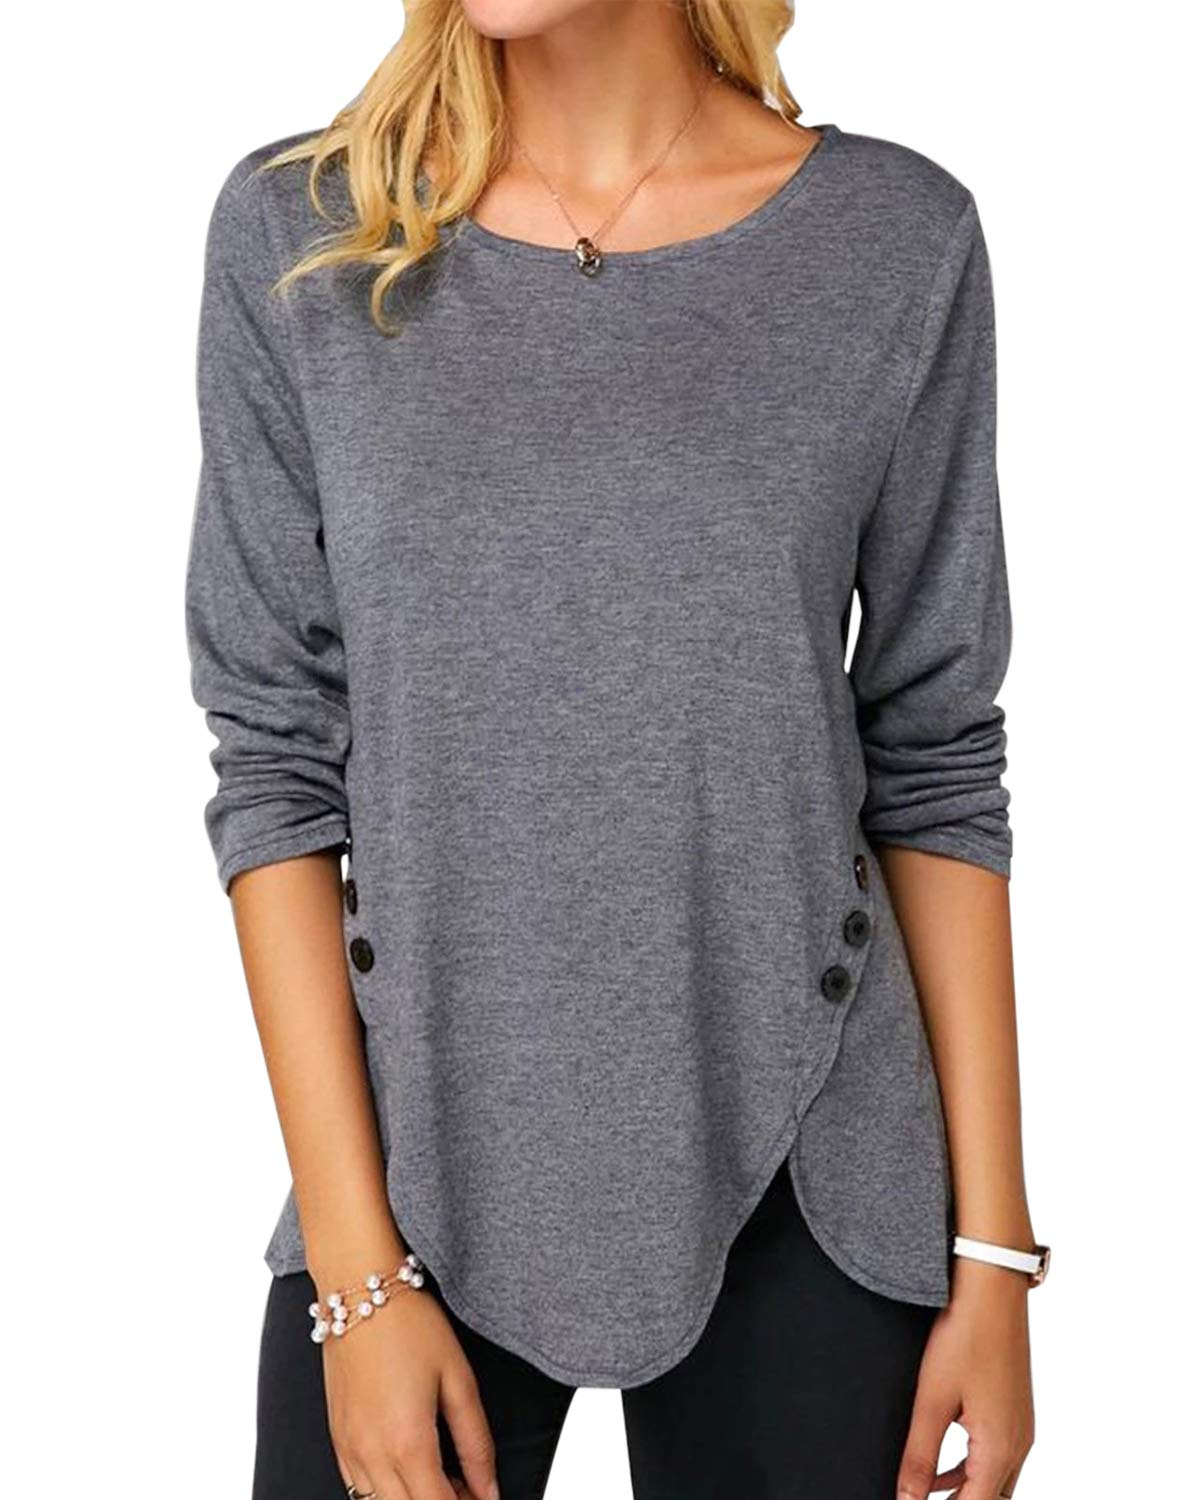 Disi Women\'s Button Round Neck T- Shirt Slim Long Sleeve Top Front Side Split Causal Pullover Blouses Basic Tunic 灰 M Gray